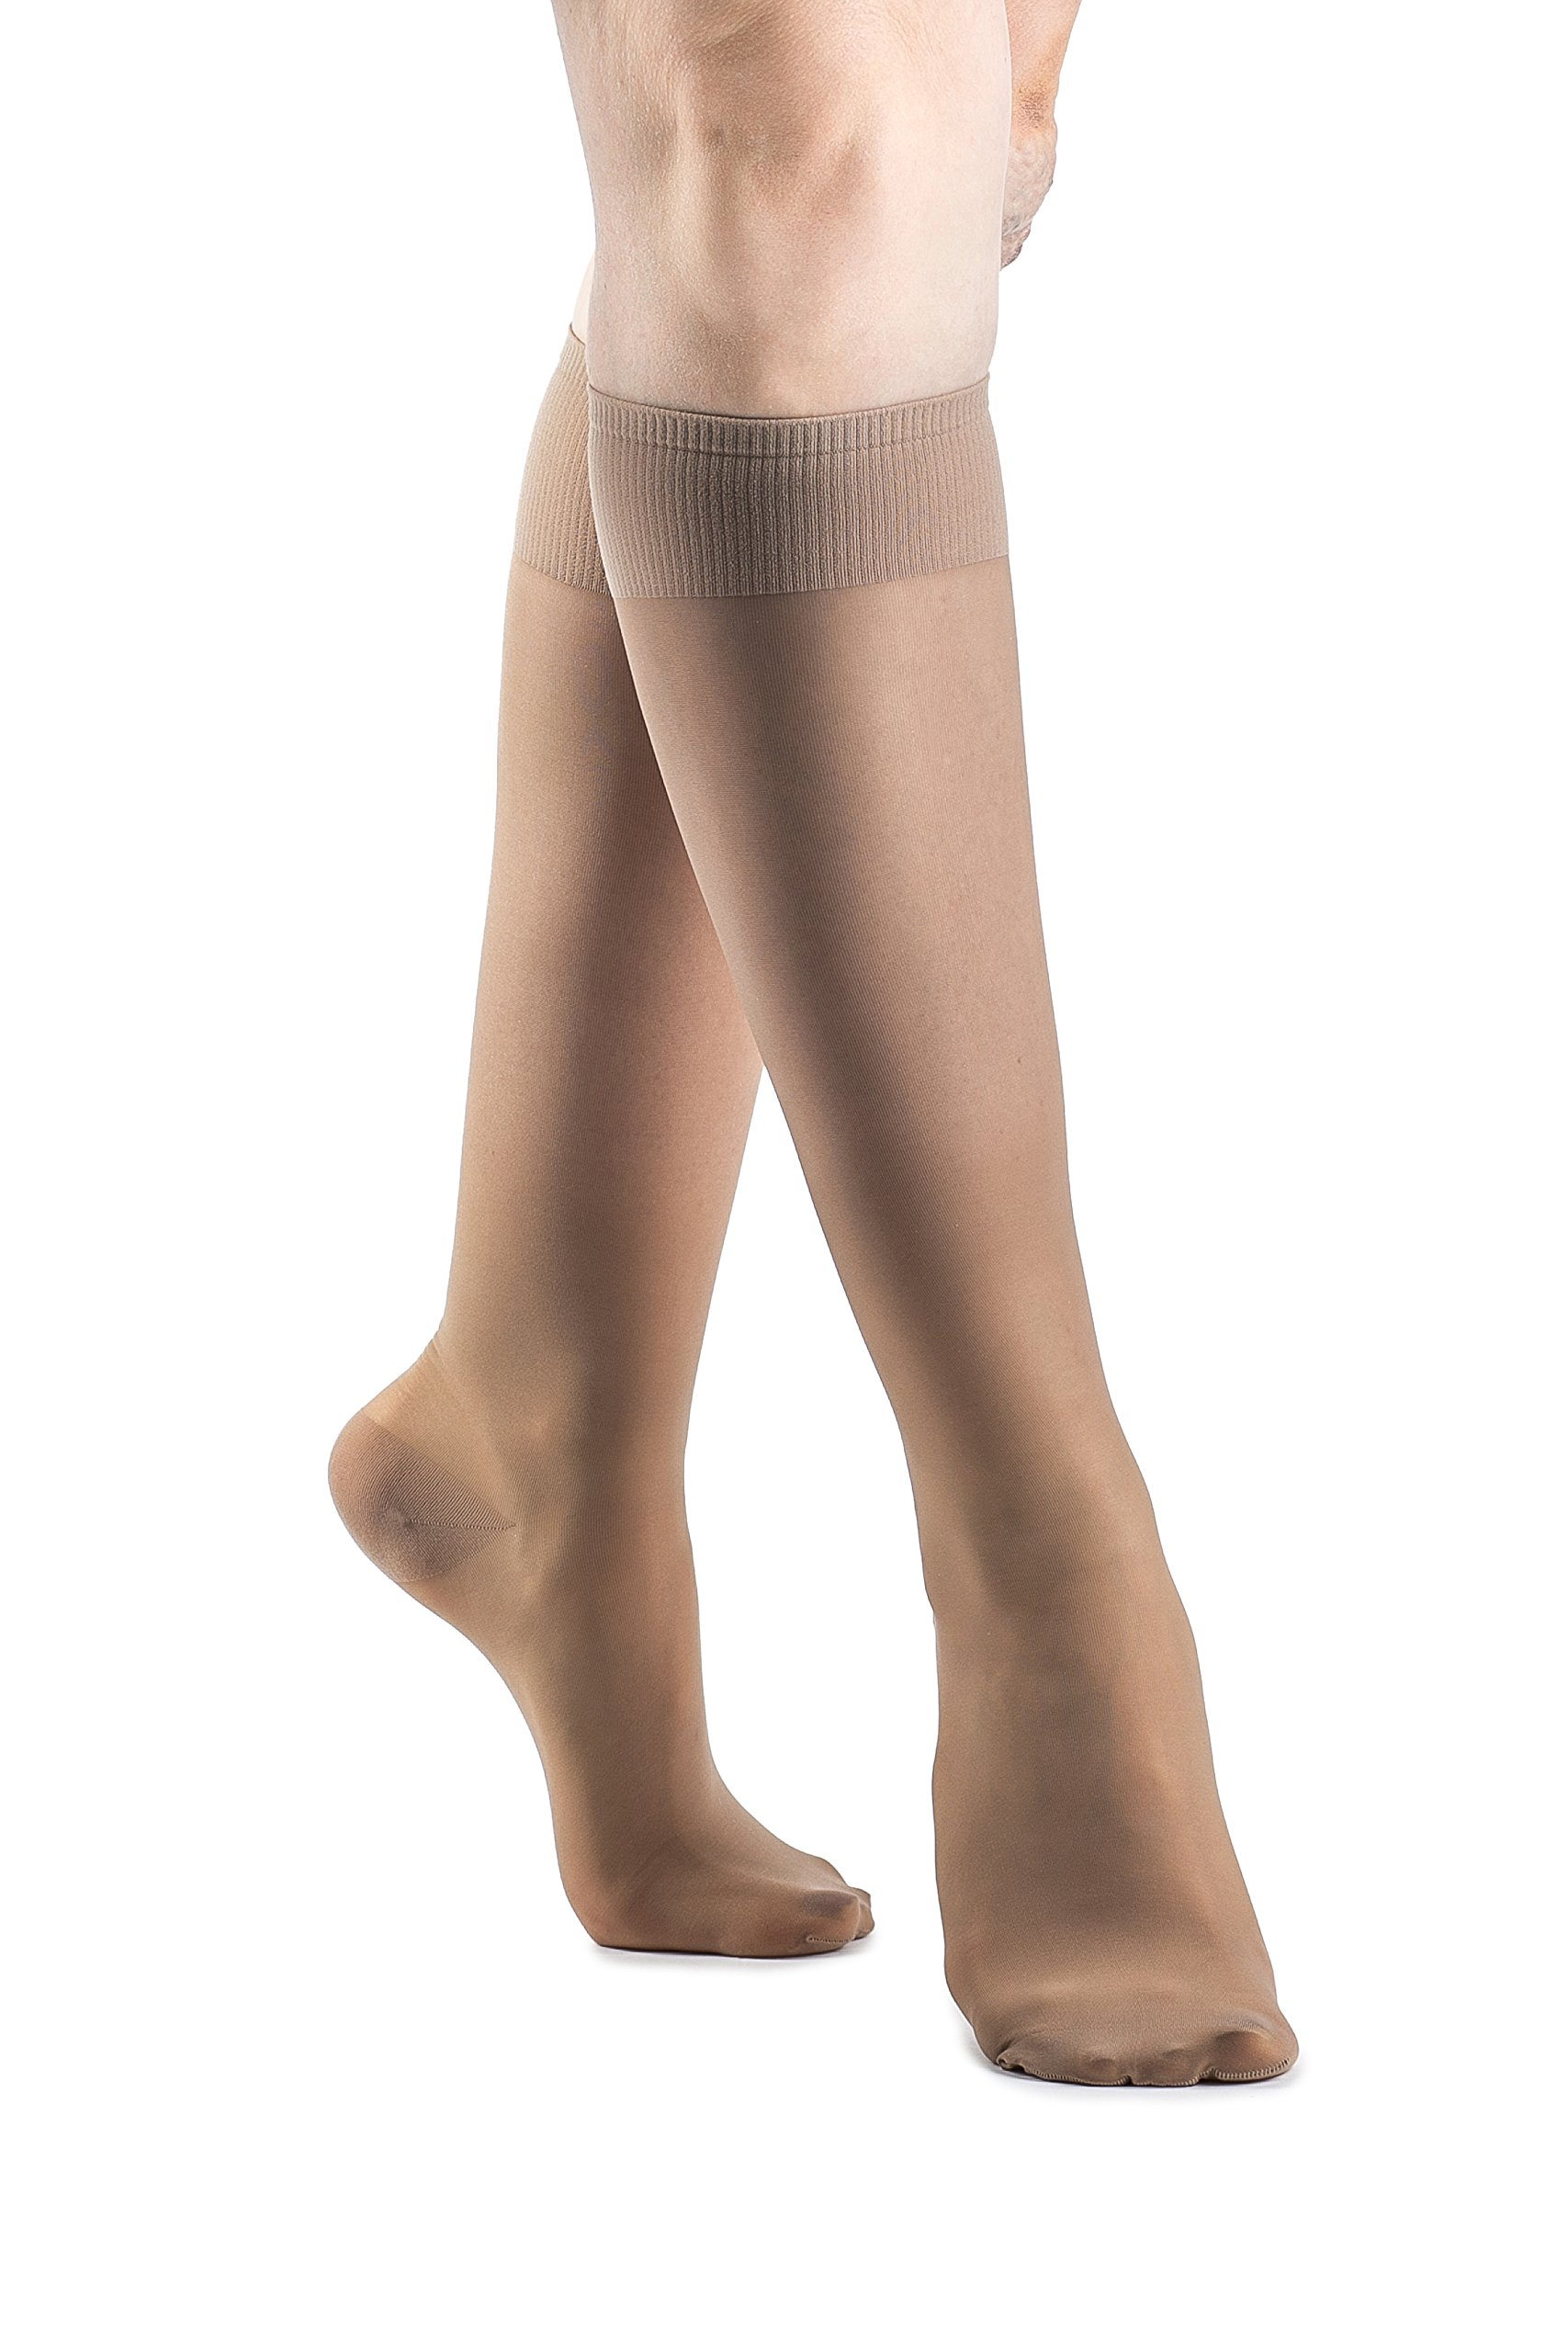 287eaa59fc Amazon.com: SIGVARIS Women's SHEER FASHION 120 Closed Toe Calf Compression  Hose 15-20mmHg: Health & Personal Care